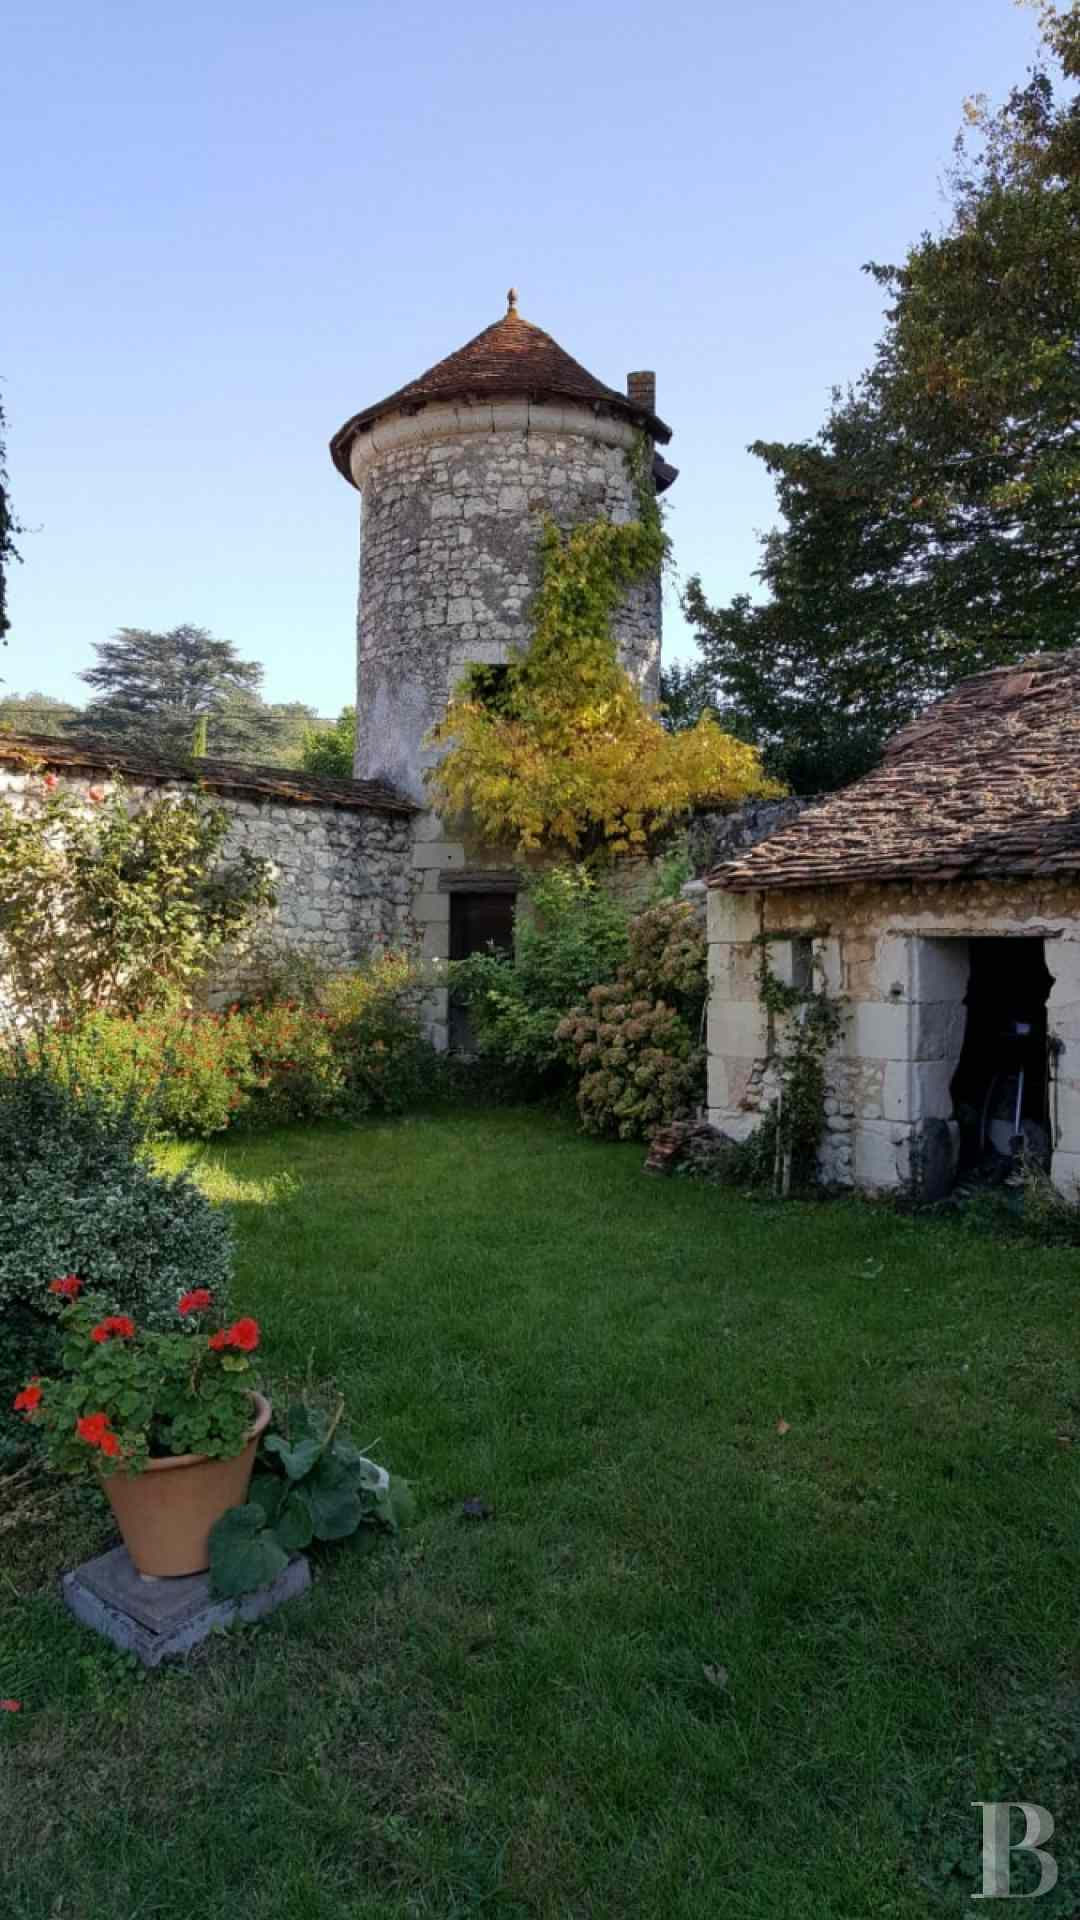 castles for sale France poitou charentes historic buildings - 16 zoom